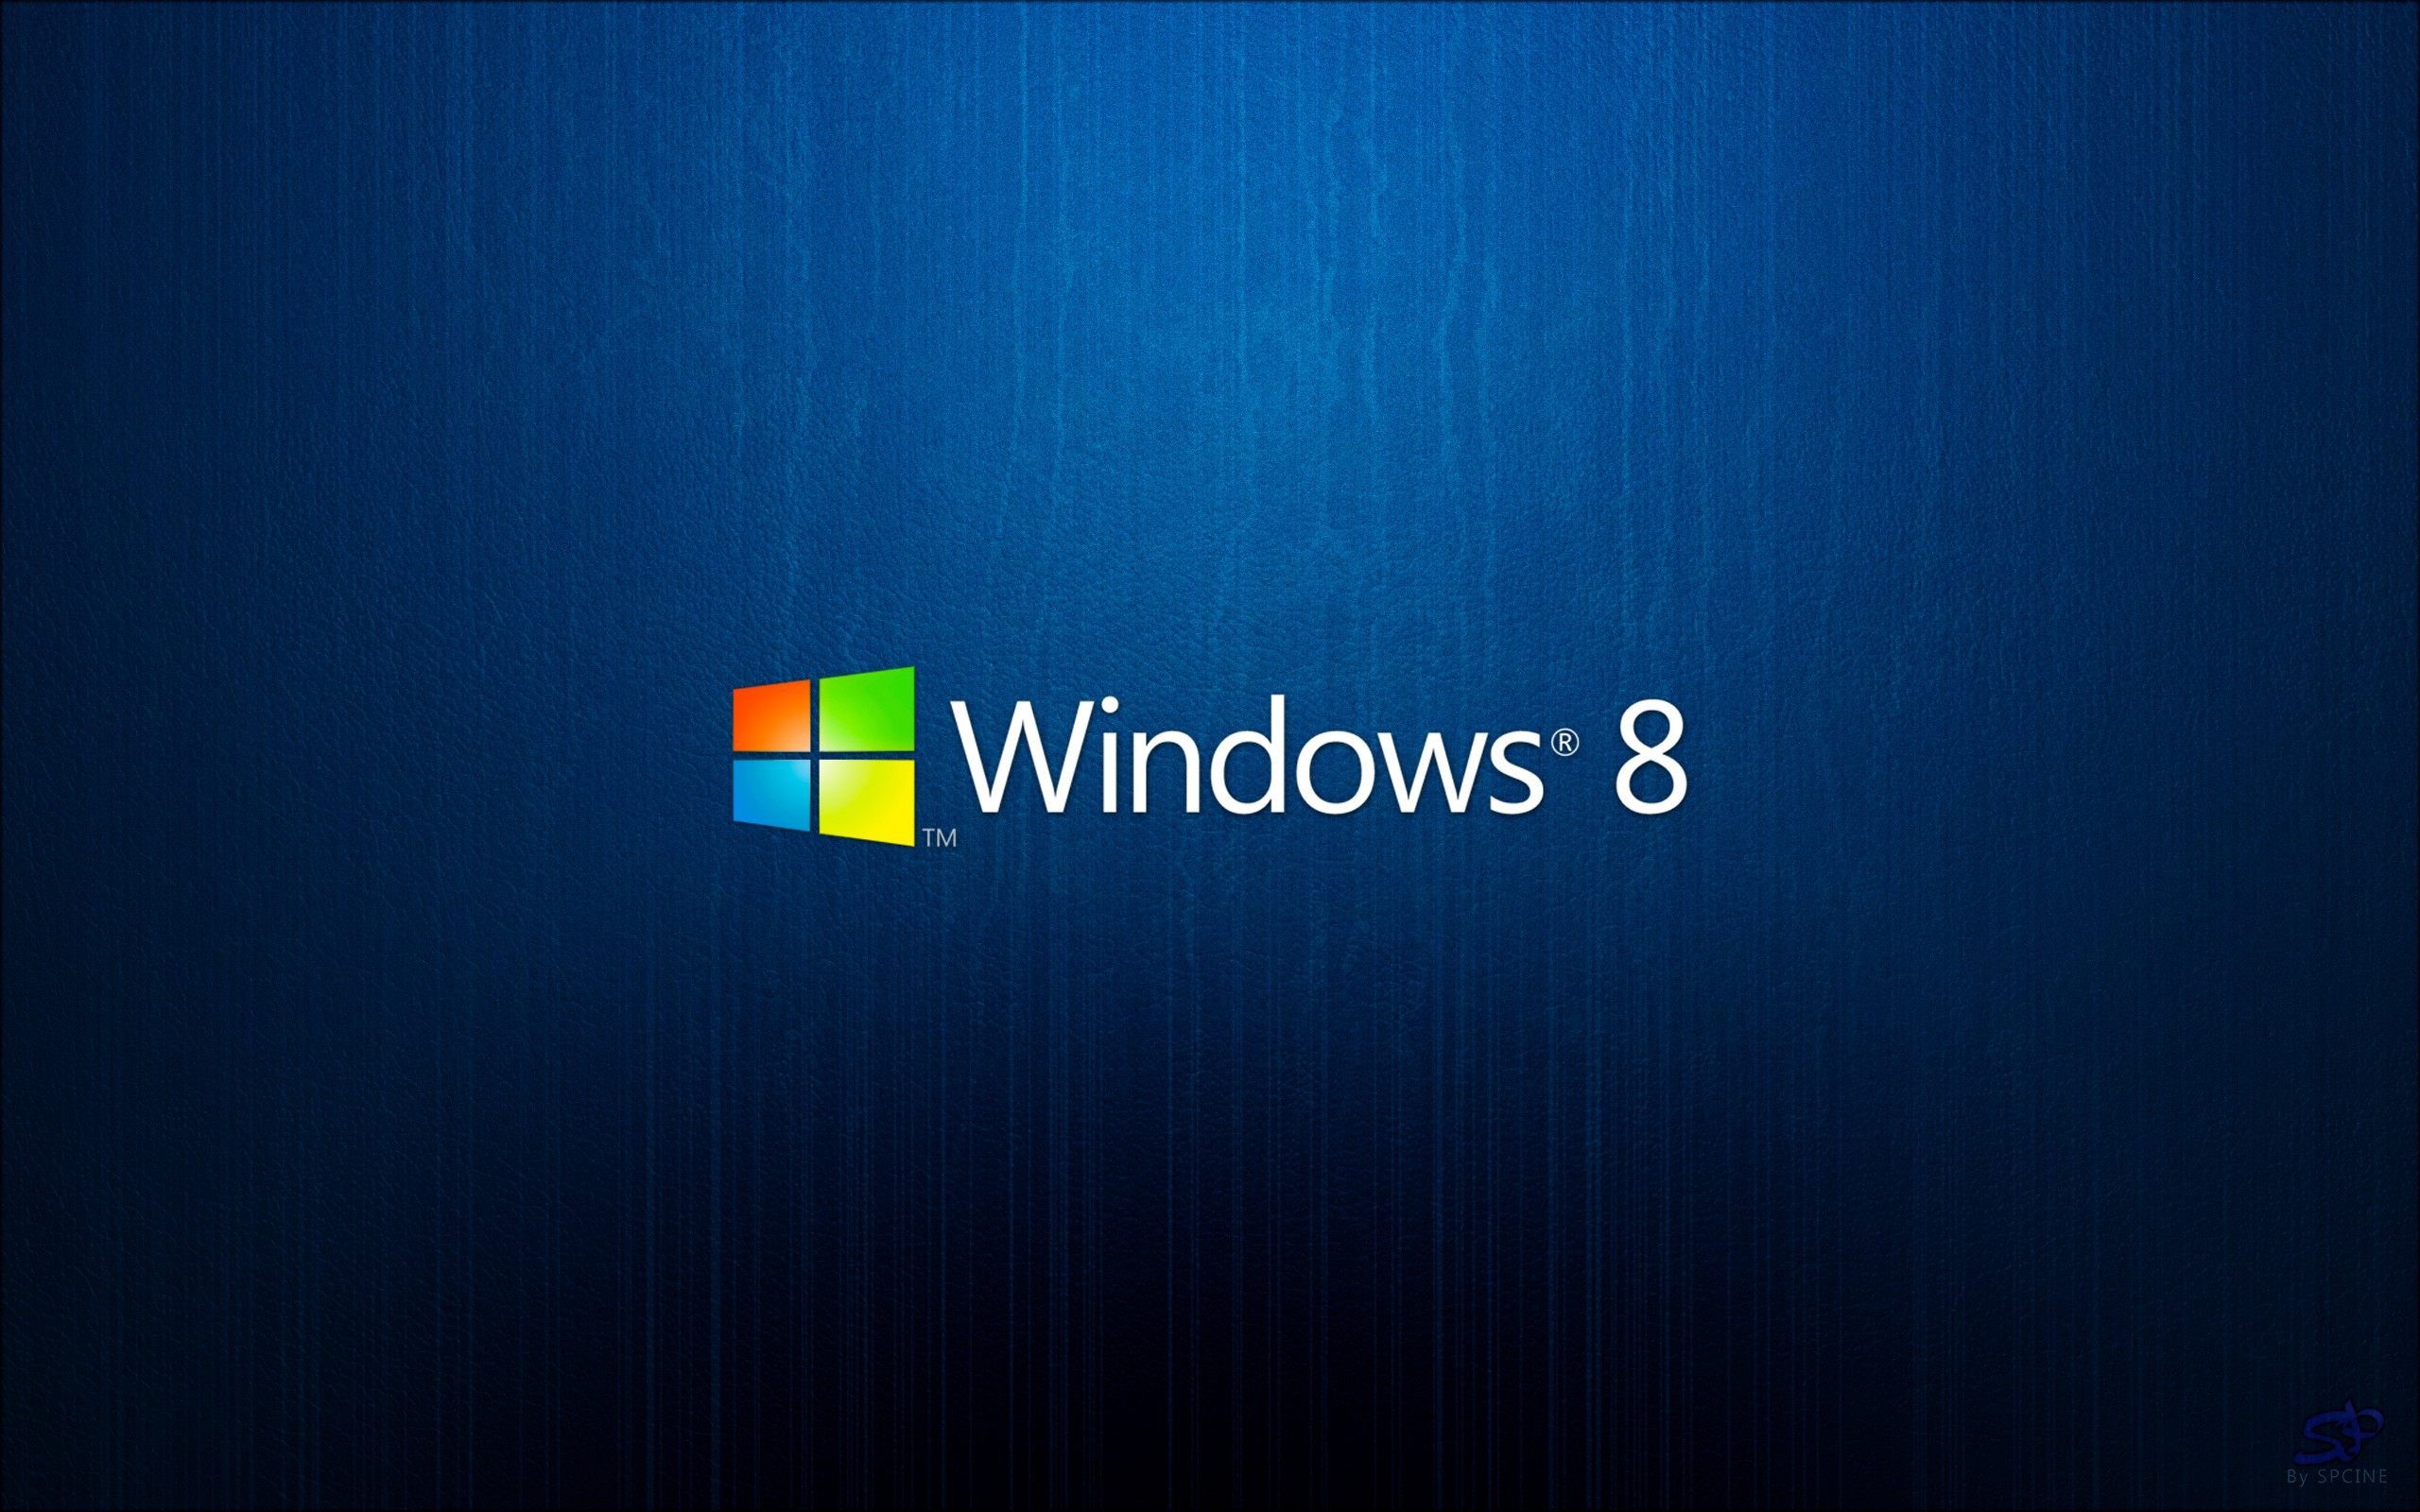 Get to know more about Windows 8 in this article written by one of our software developer's expert!